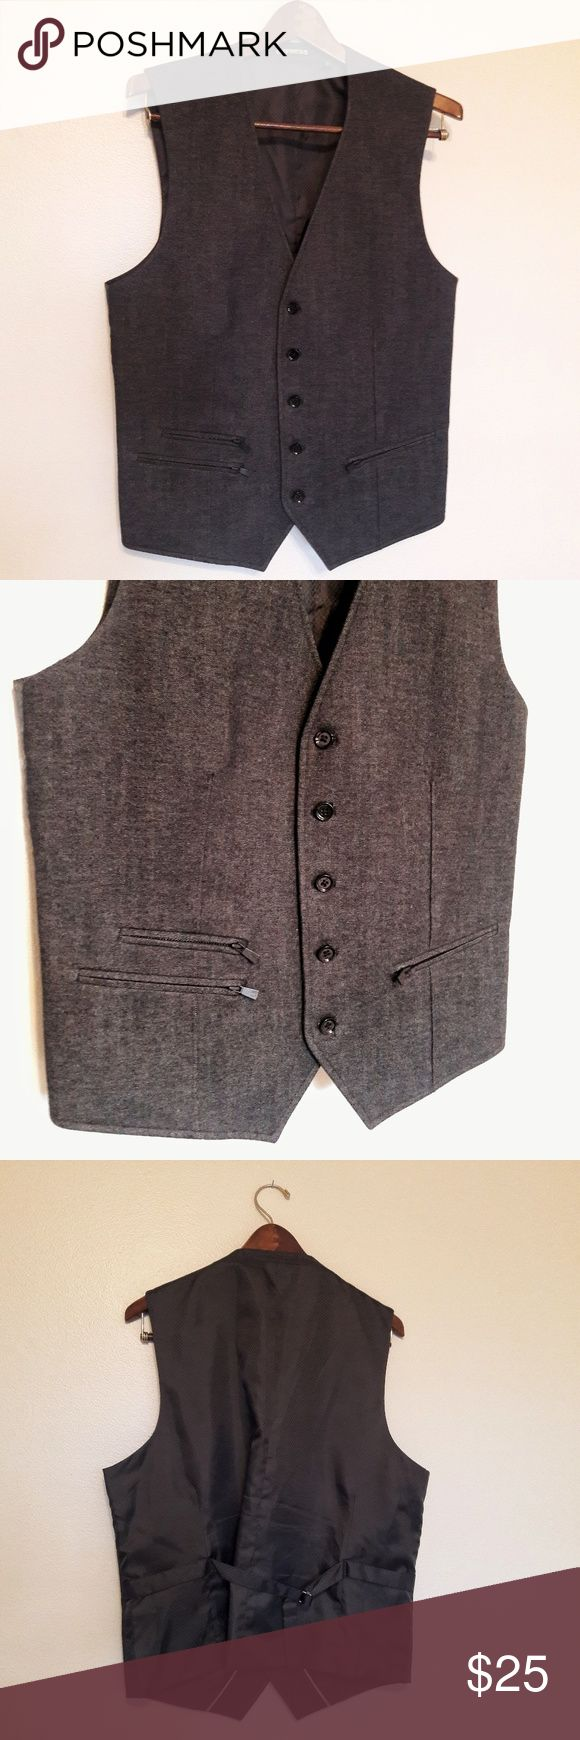 Express Men's Suit Vest Large Men's Express suit vest. Adjustable in the back. Zipper and button detailing in the front as pictured.   52% cotton, 31% polyester, 17% rayon  Material is 80% polyester and 20% rayon. Lining is 100% poly.   Bundle and save! Offers are welcome 💕💕 Express Suits & Blazers Vests